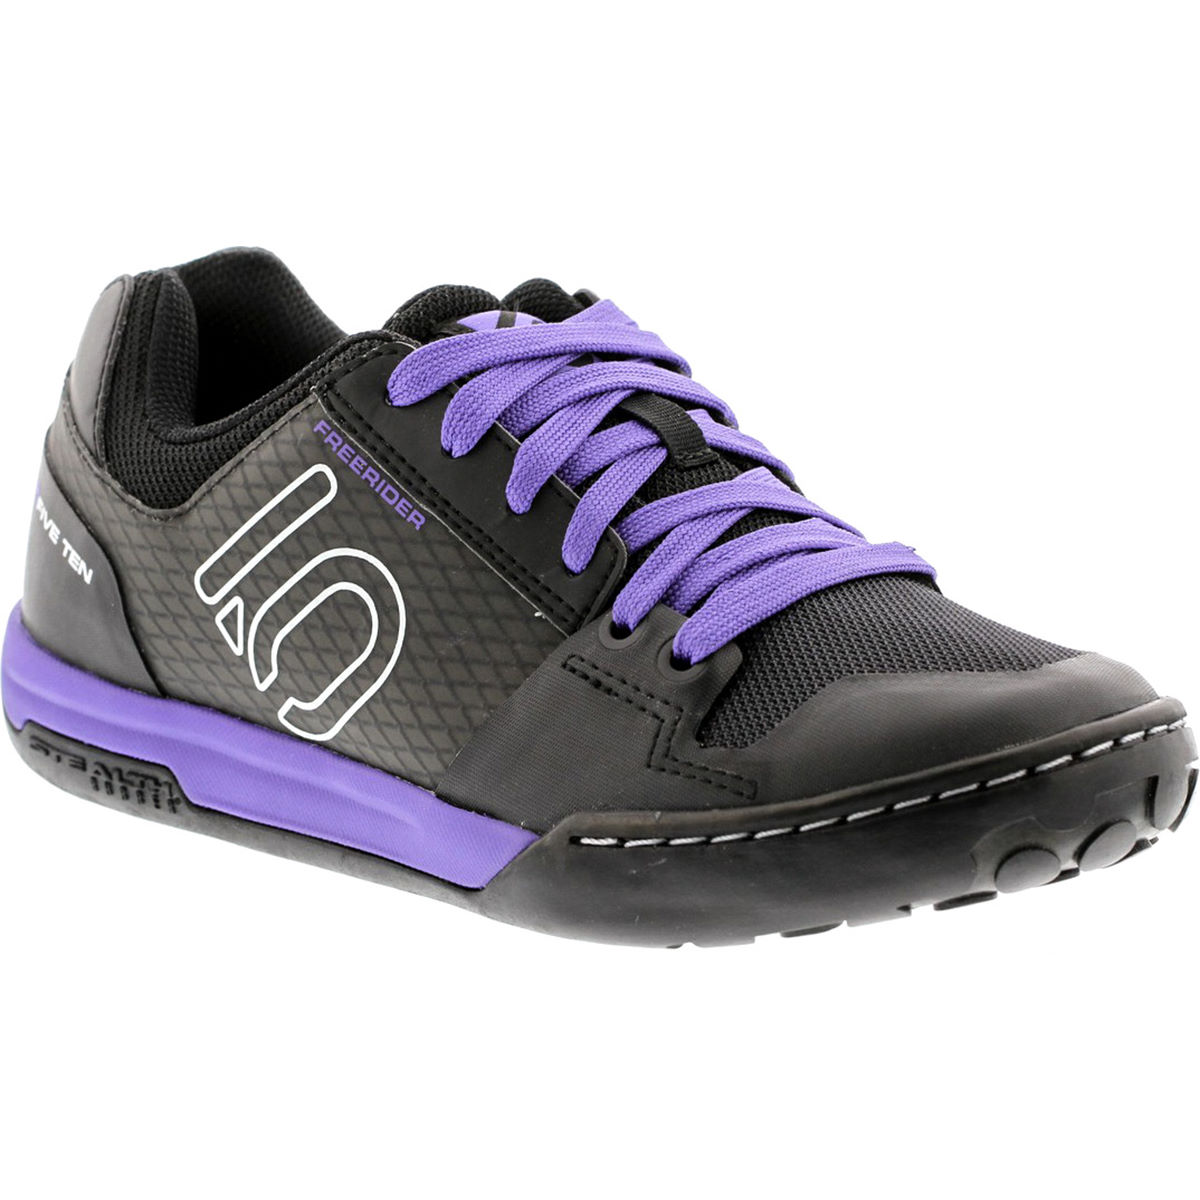 Chaussures VTT Femme Five Ten Freerider Contact - EU 39.5